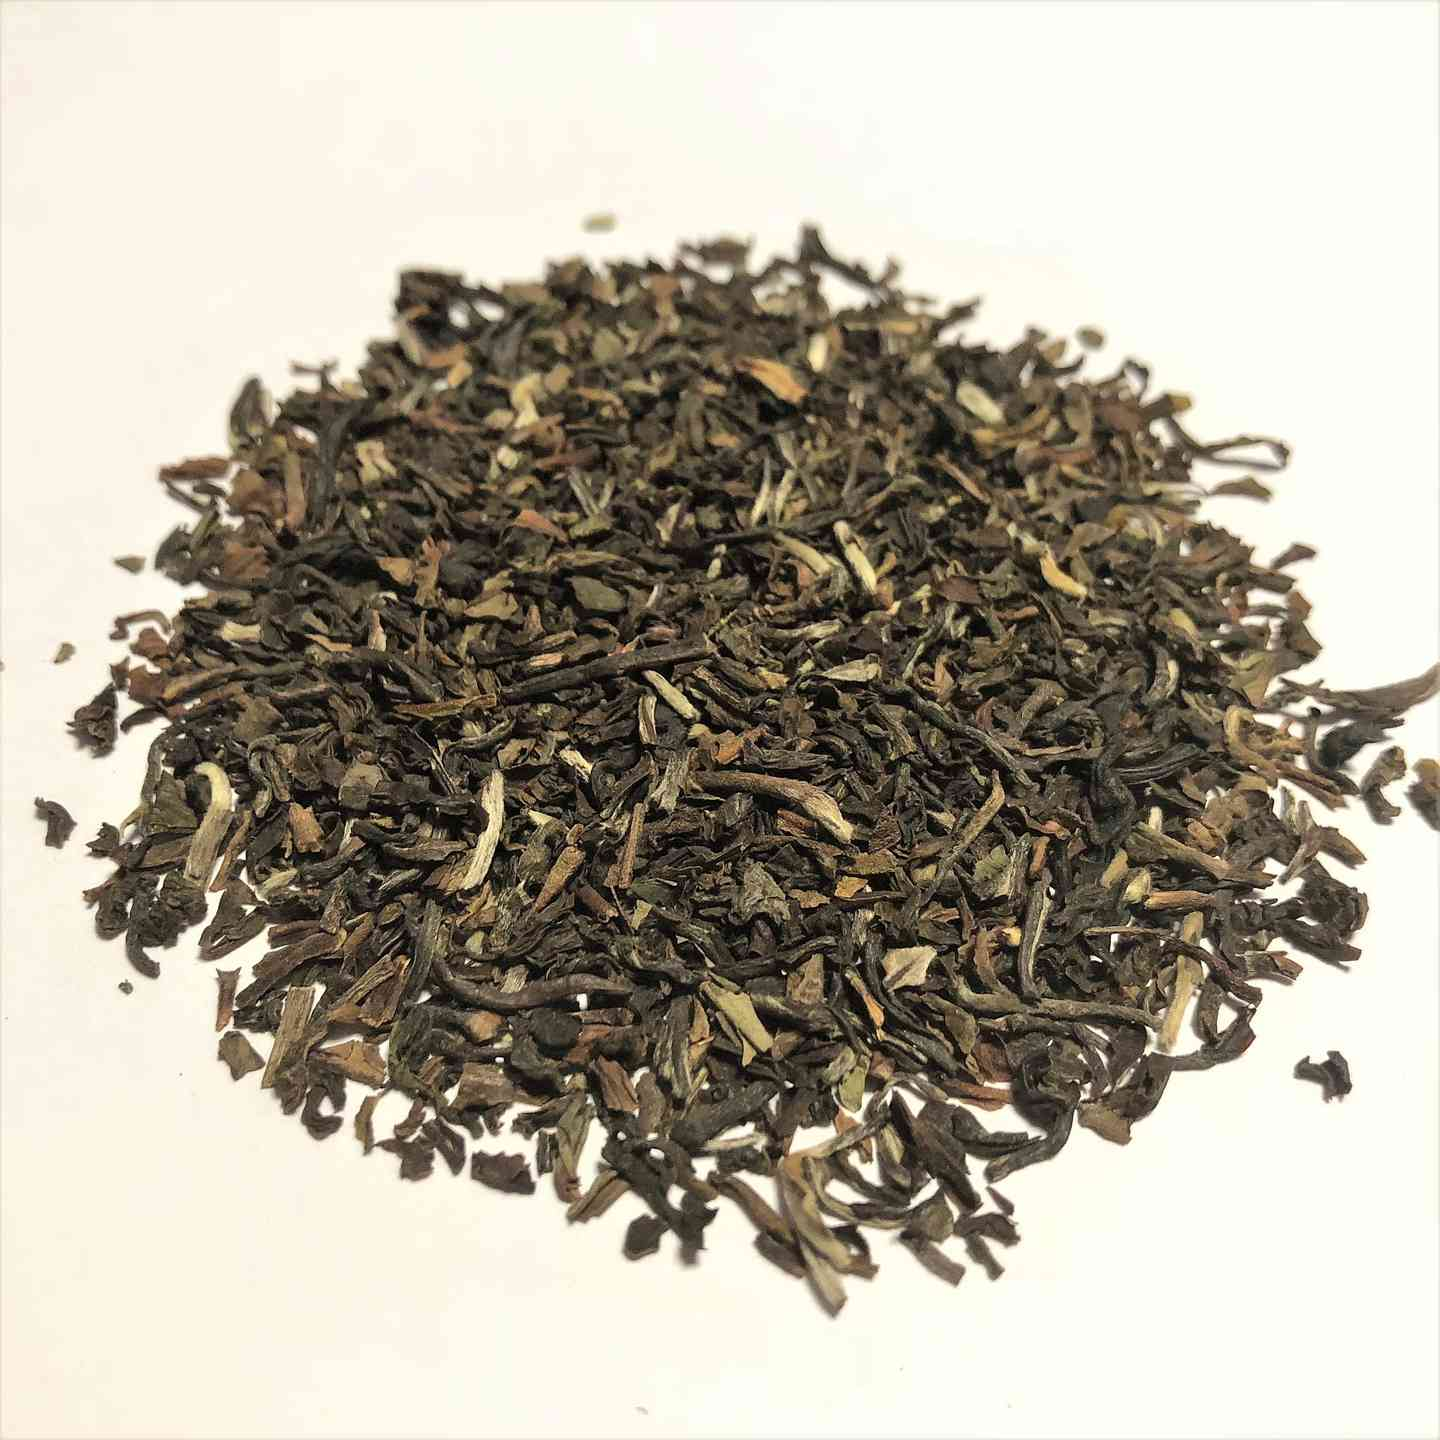 1st Flush Darjeeling - FTGFOP - 1 - Loose Leaf Tea